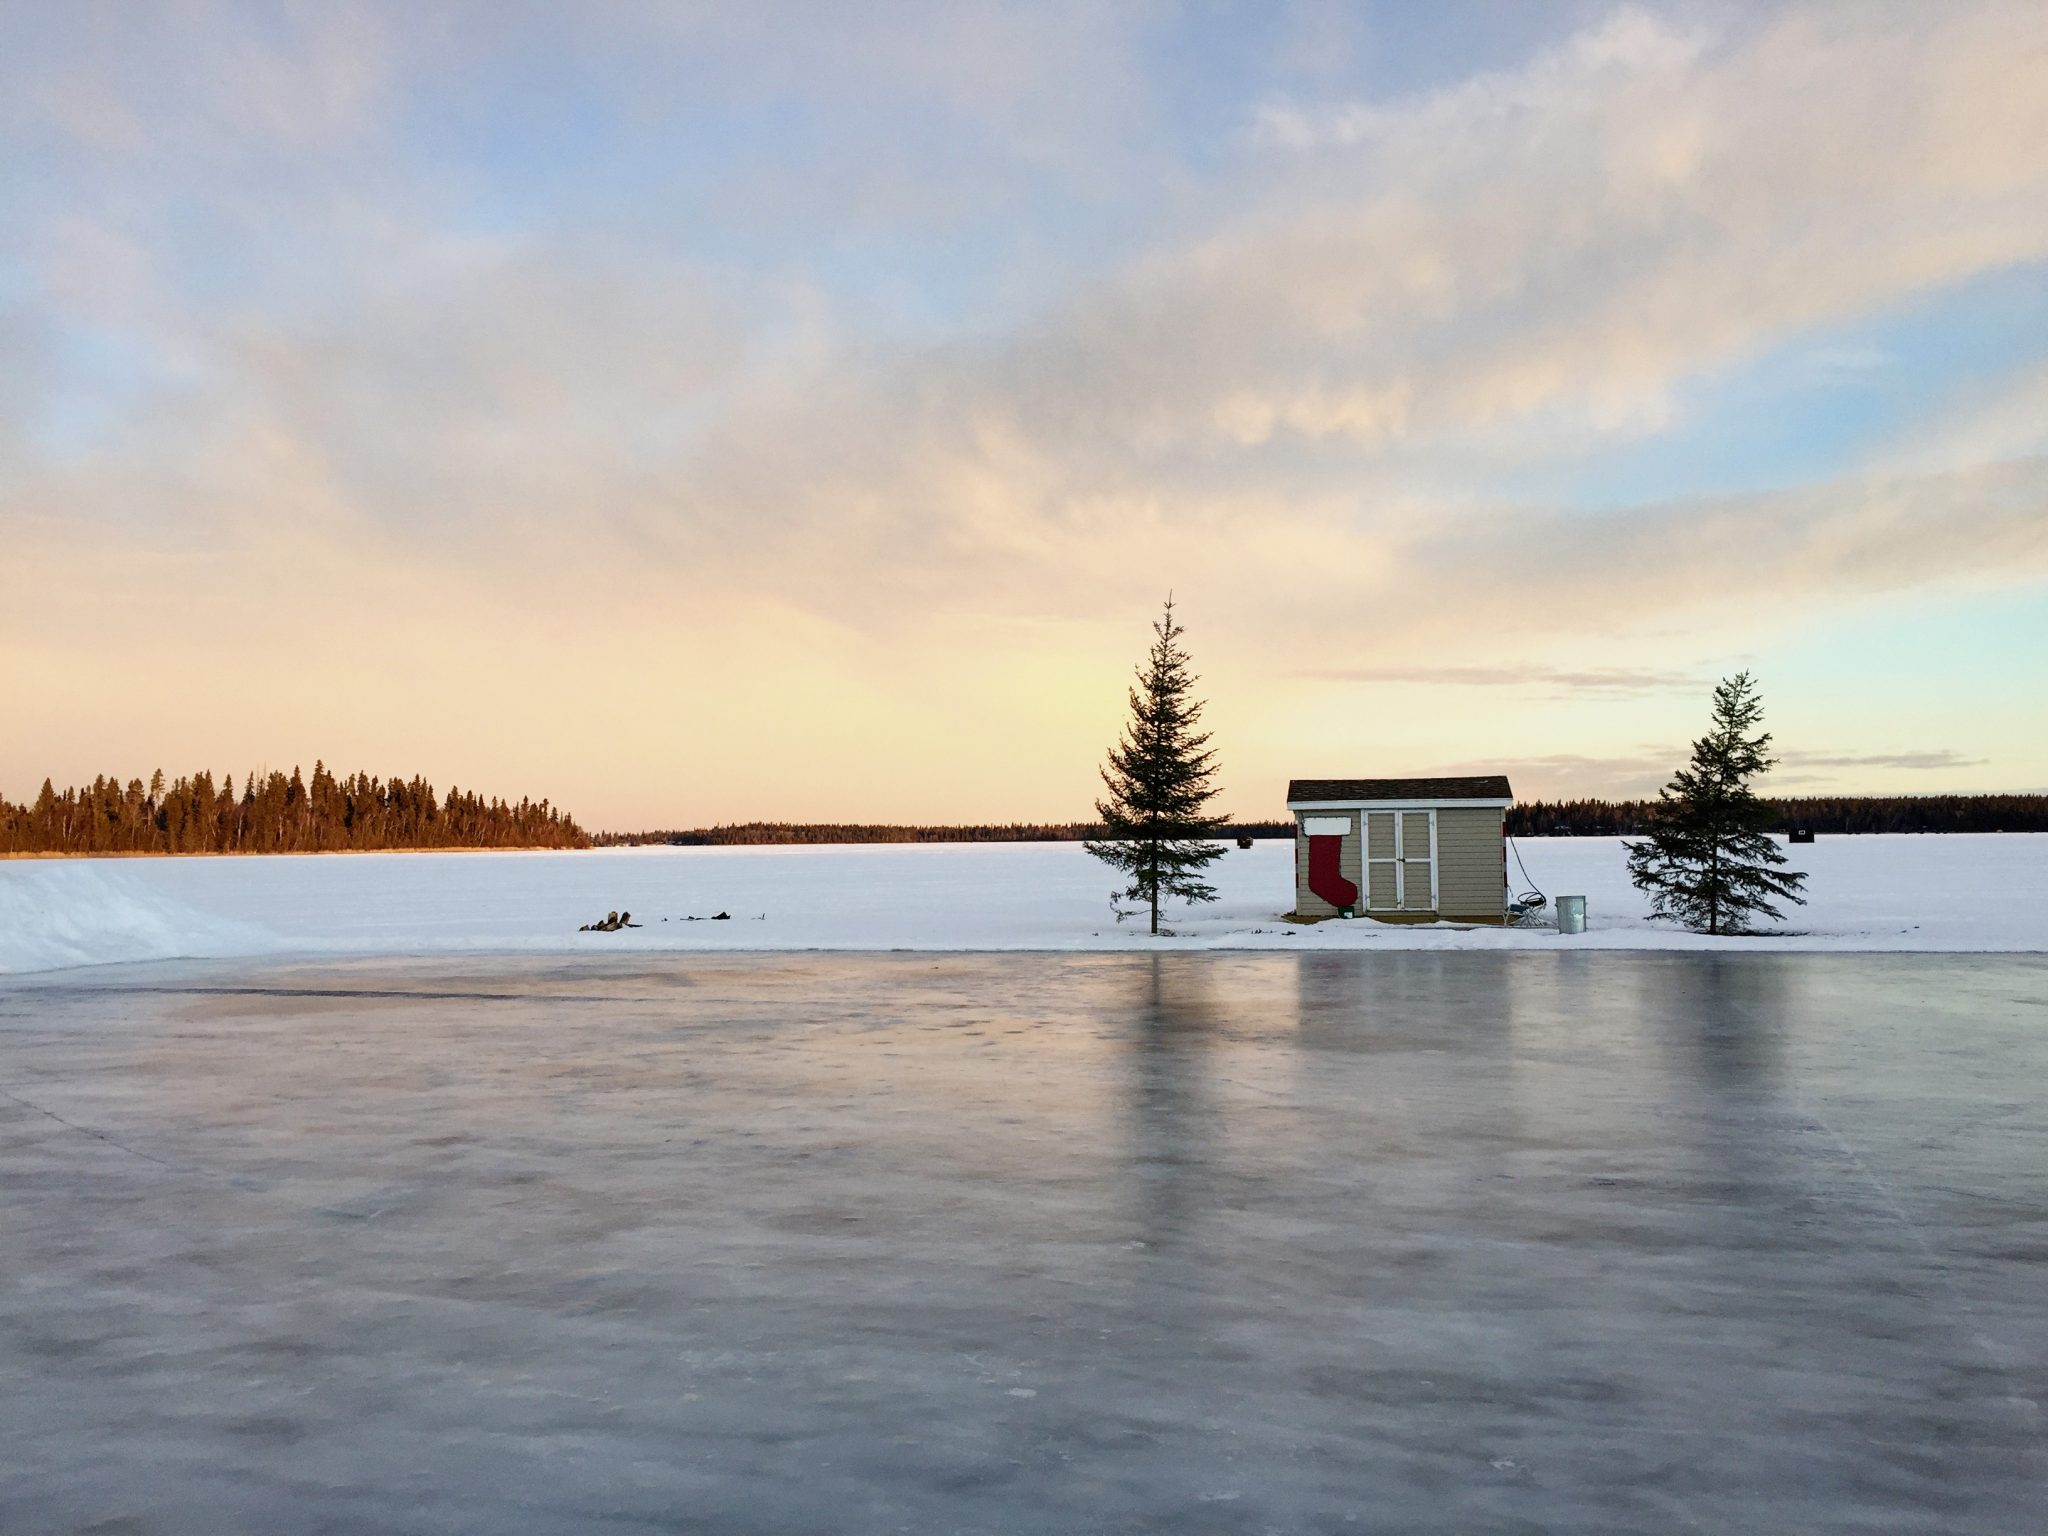 lovely sunset at Emma Lake in winter at Sunset bay on frozen pond by ice shack